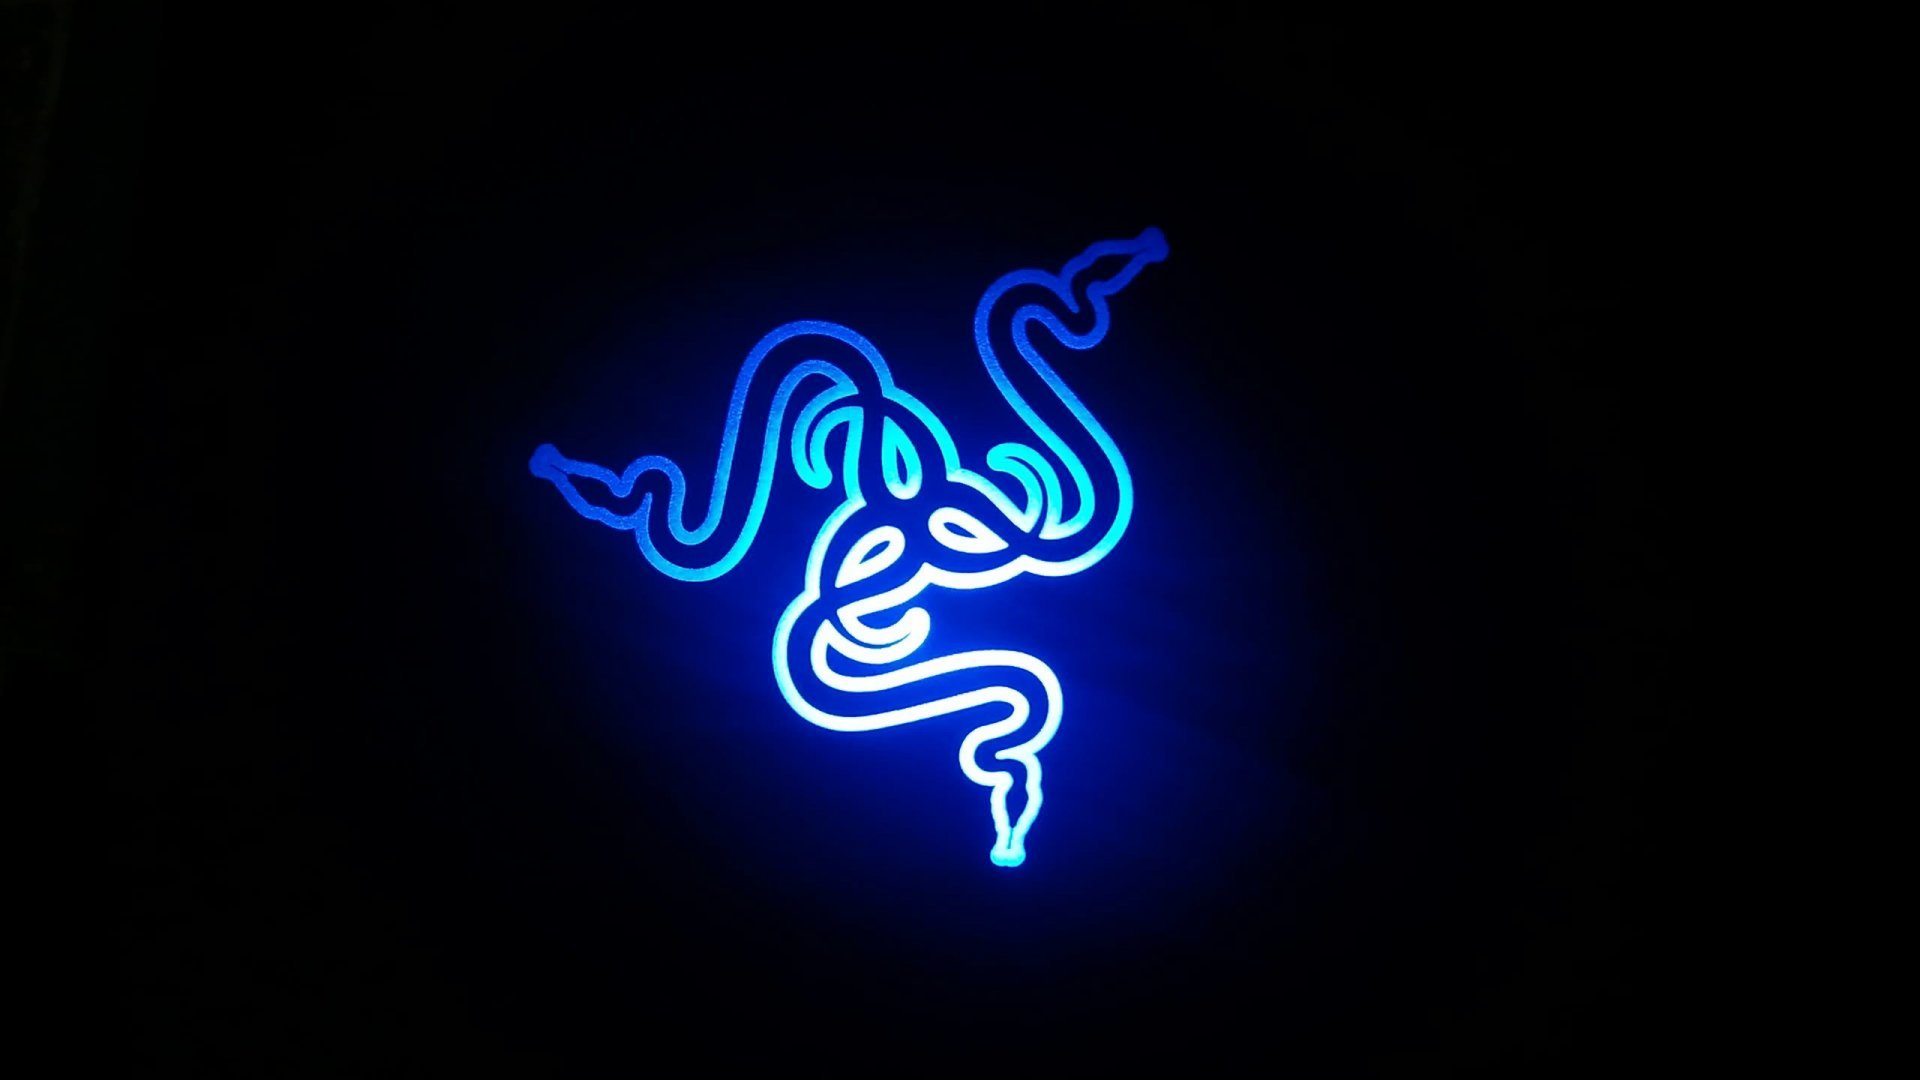 razer wallpapers hd for desktop backgrounds